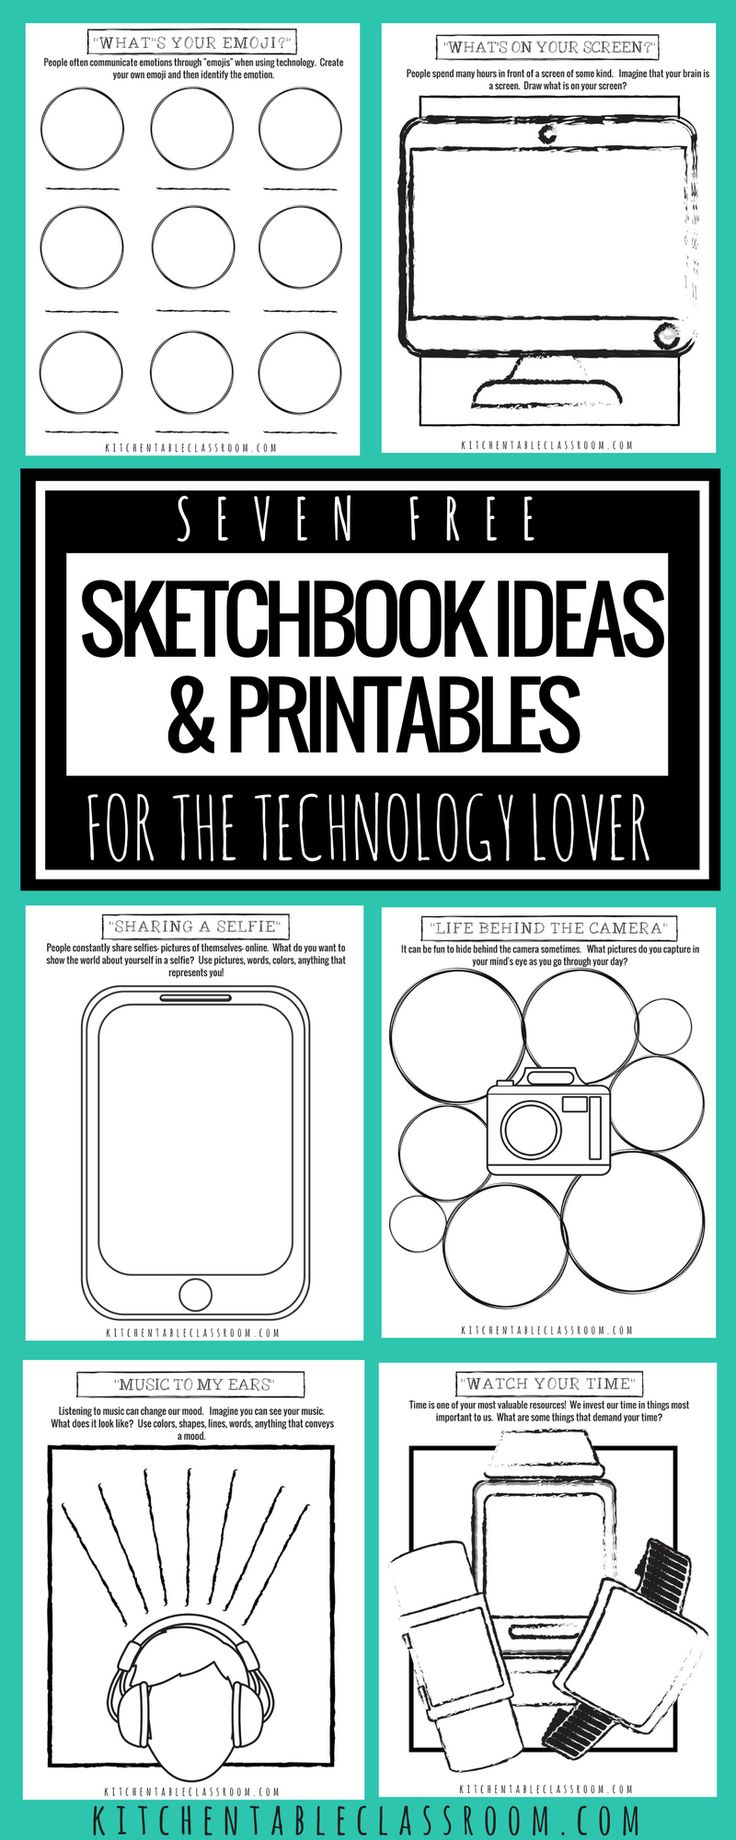 Sketchbook Concepts and Printables for the Expertise Lover